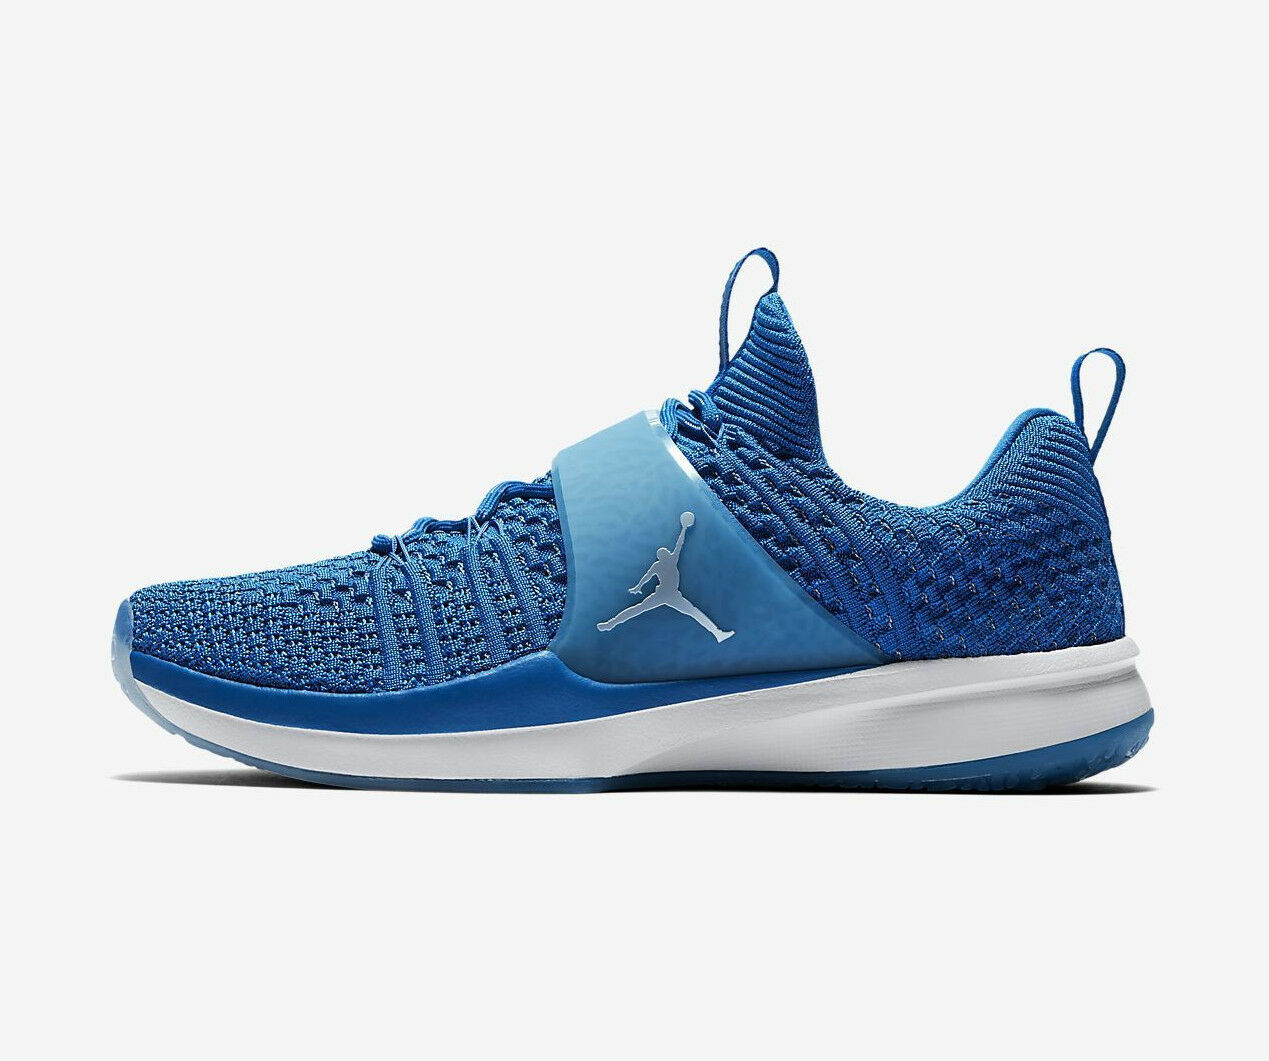 NIKE JORDAN TRAINER 2 FLYKNIT Trainers Gym Casual Fashion - UK 9 (EUR 44) - Blau   | Mode-Muster